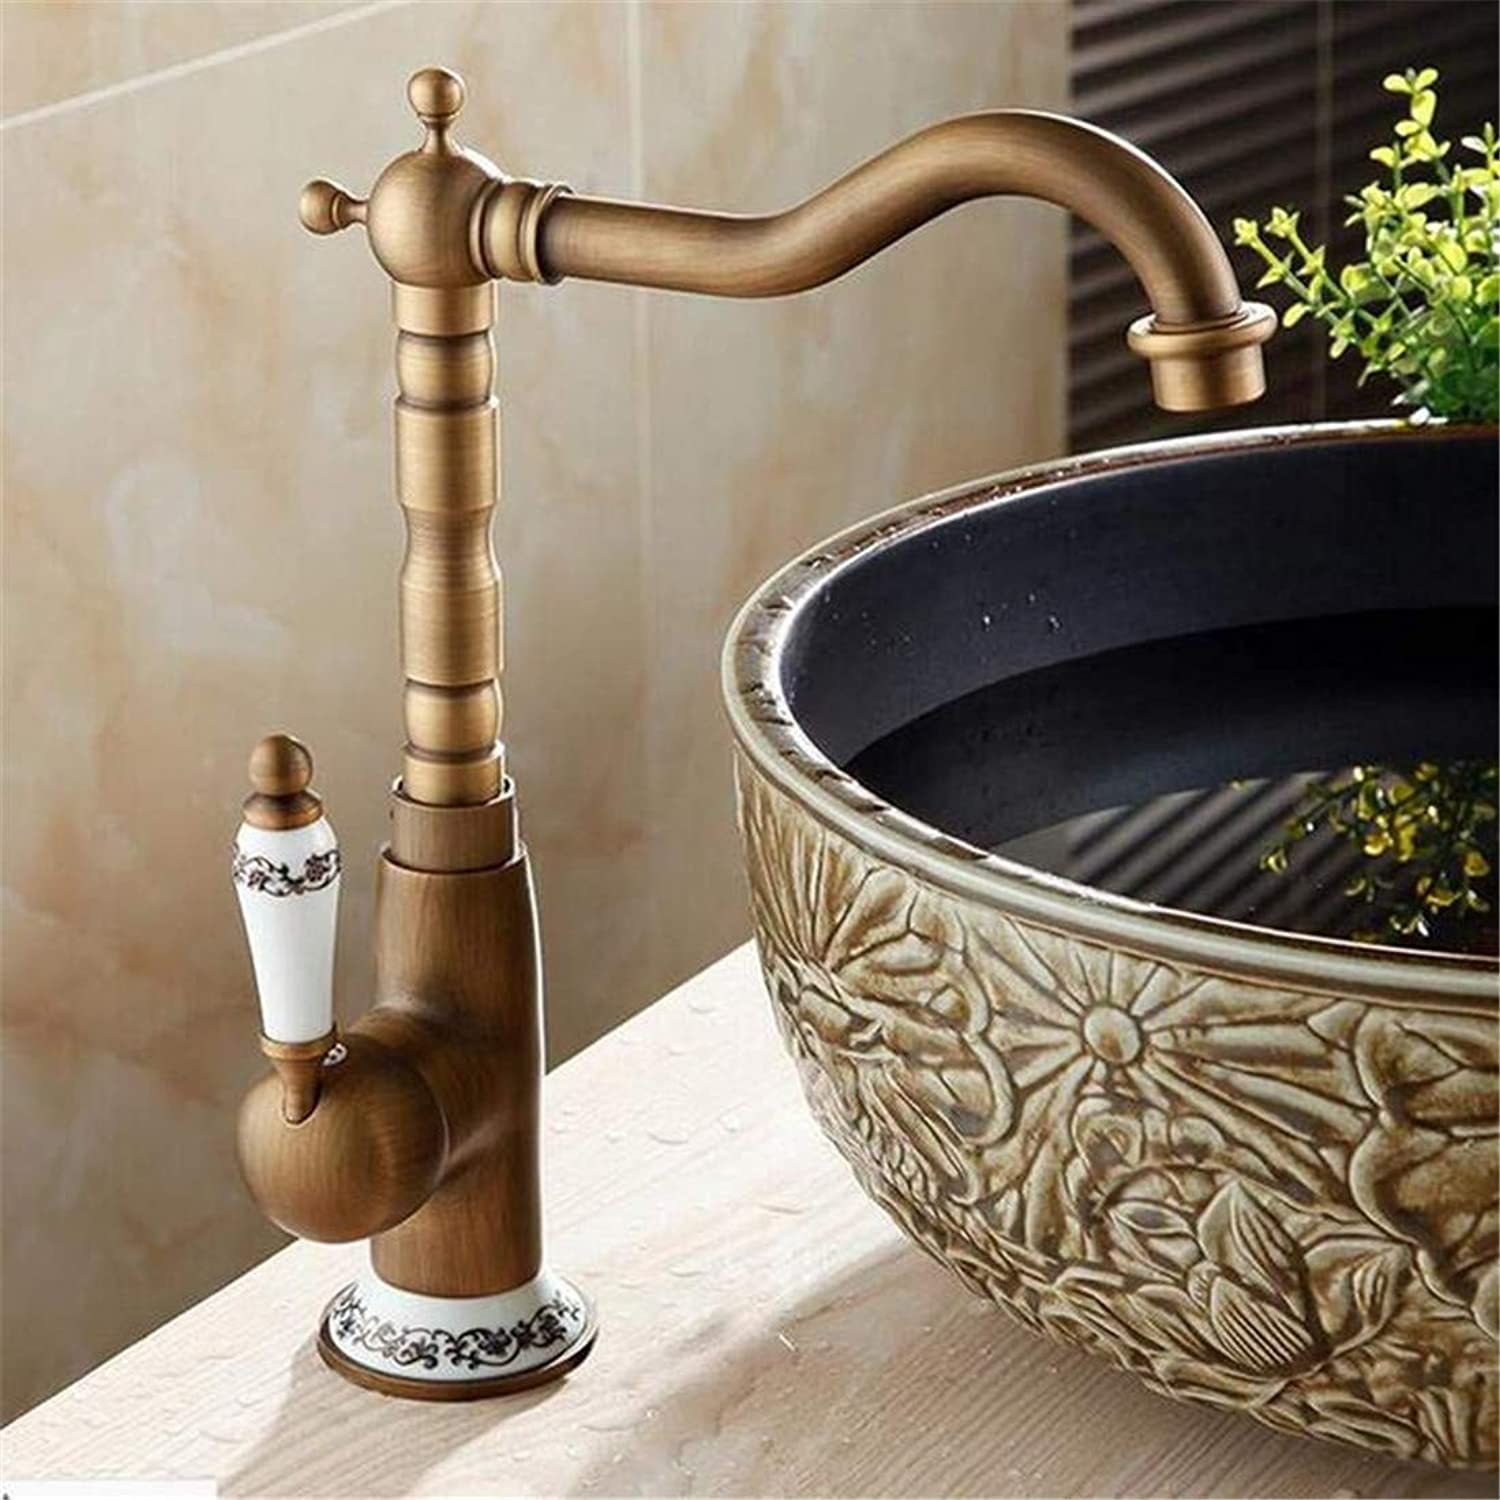 Faucet Modern Plated Kitchen Bathroom Faucet Basin Faucet Single Hole Bathroom Faucet Brass Hot and Cold Tap